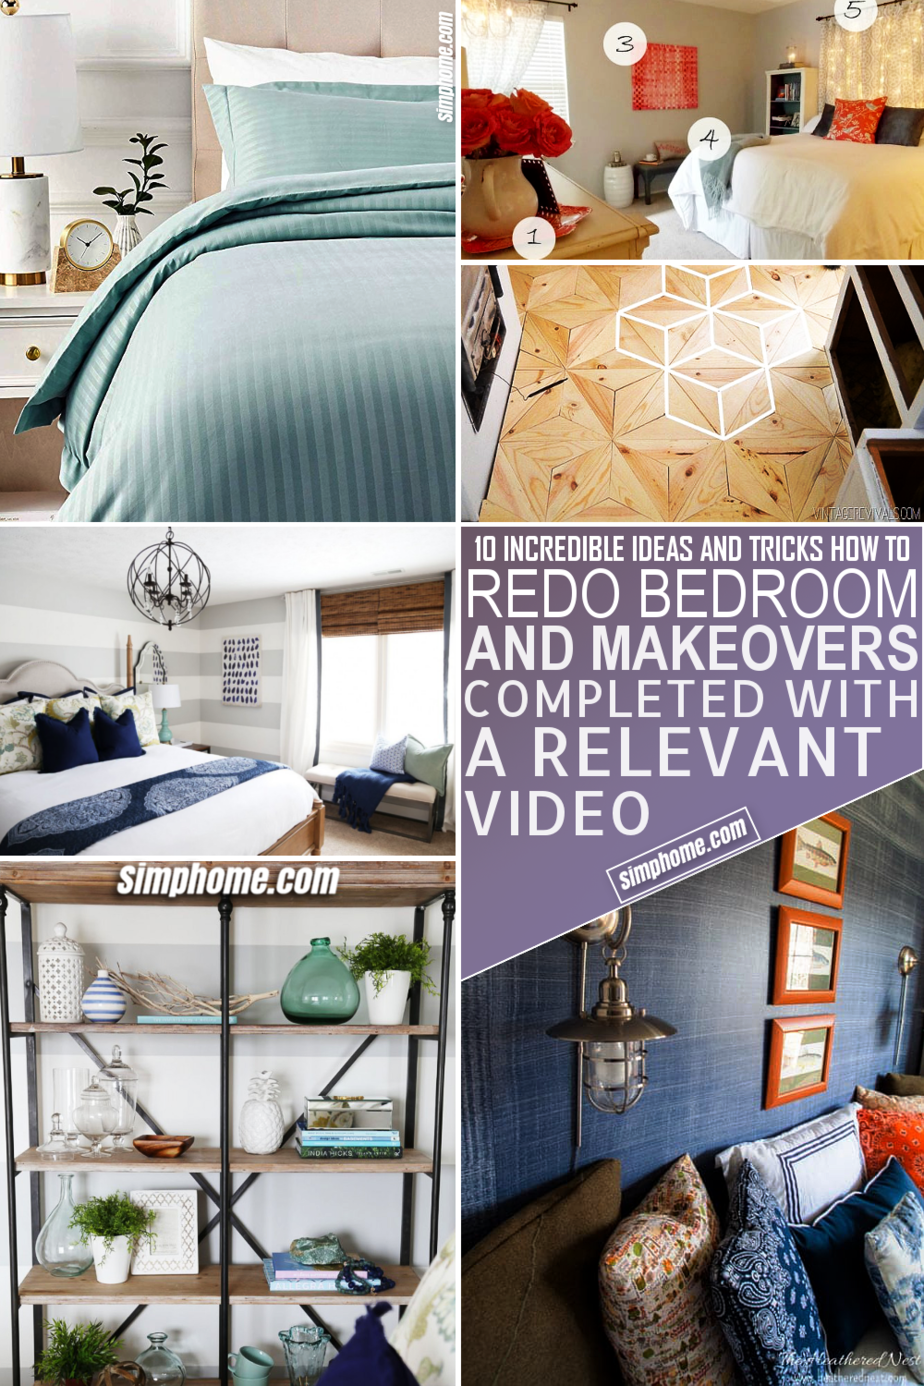 10 Bedroom Redo Ideas via Simphome.com Featured Image